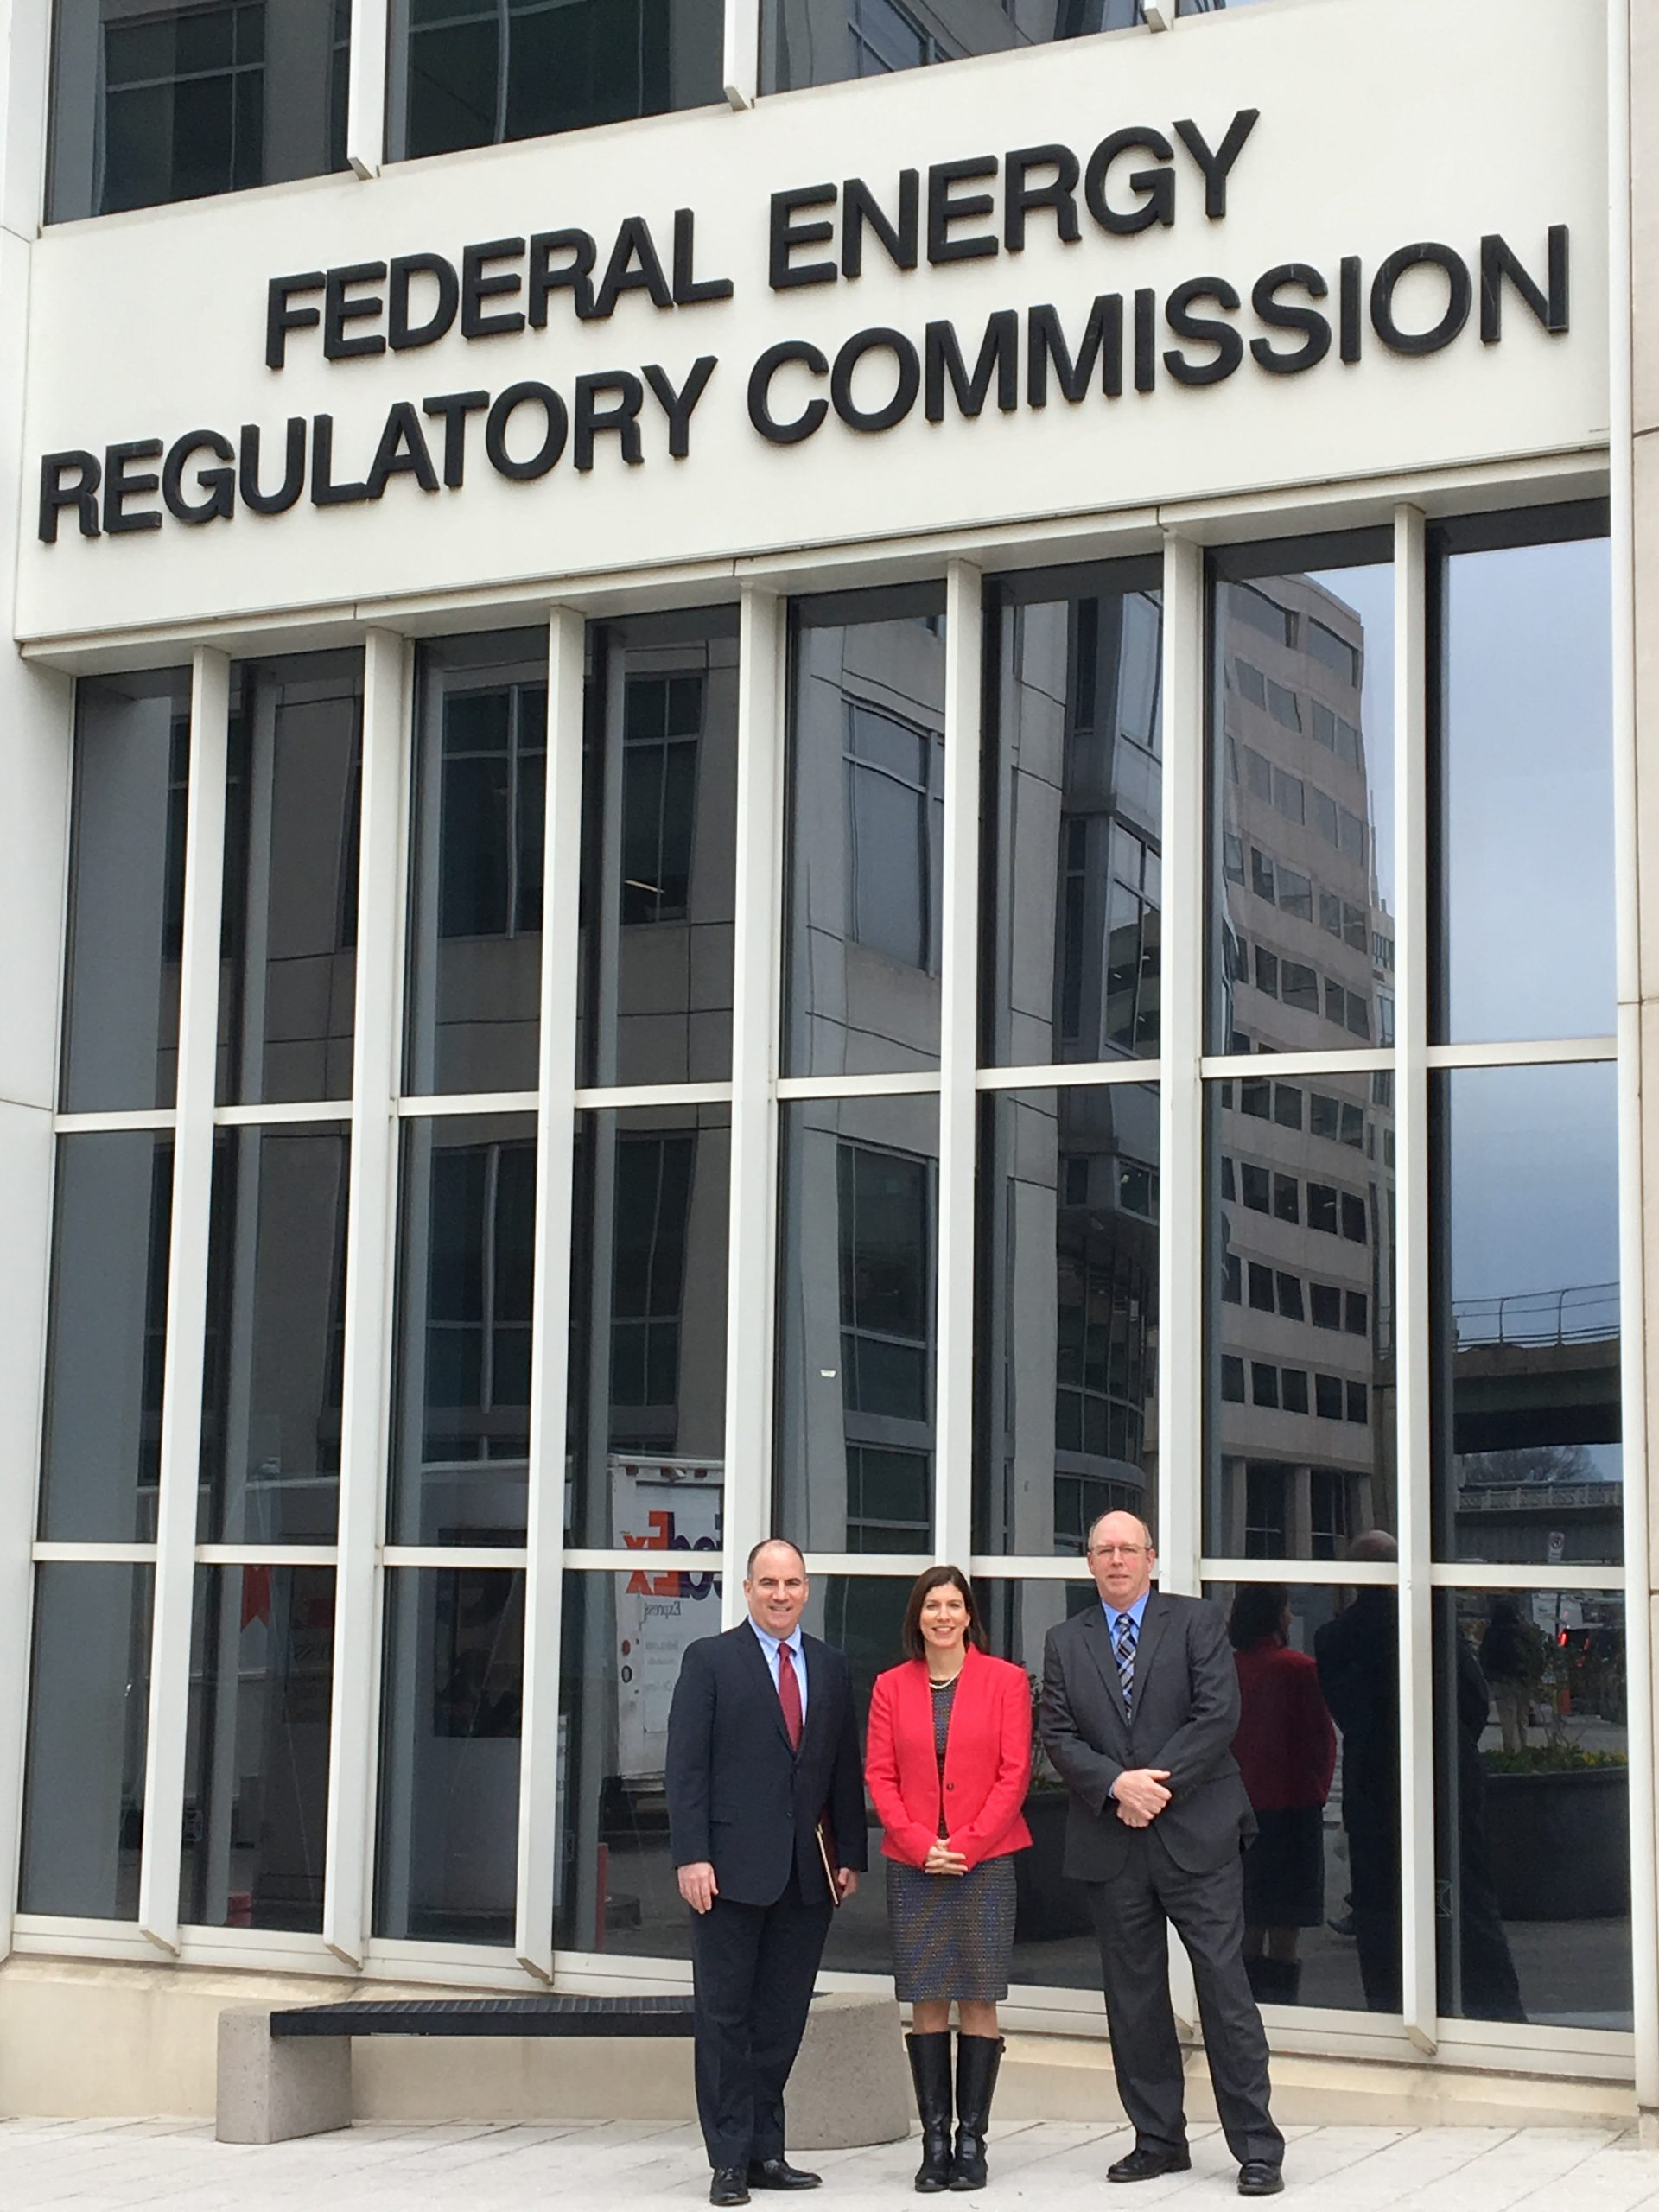 MMWEC representatives visit the Federal Energy Regulatory Commission in March 2018..